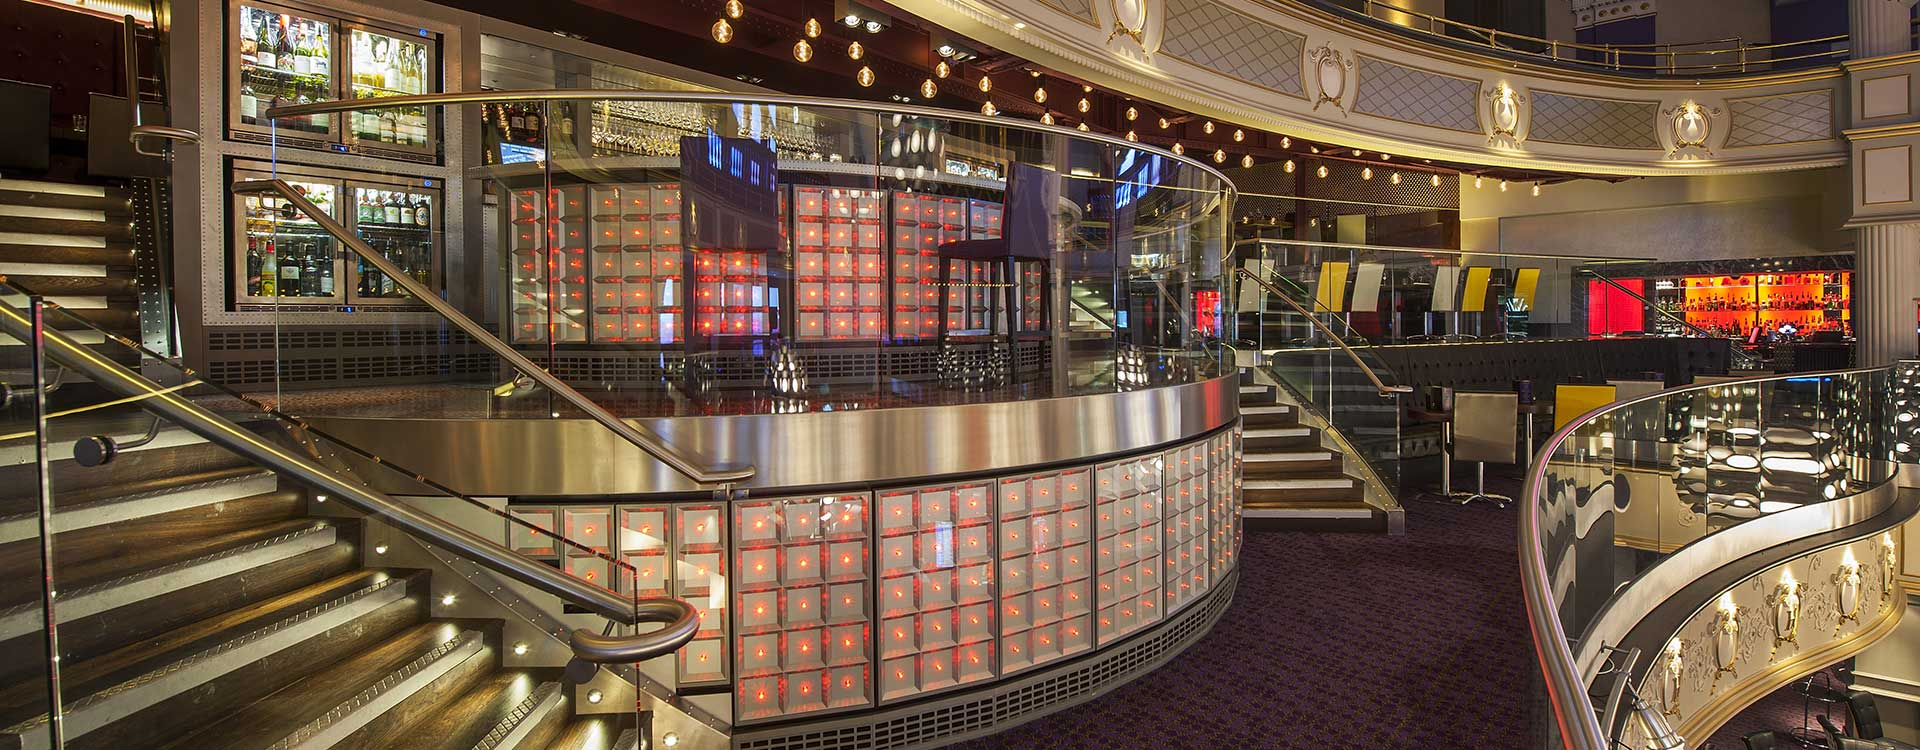 fiber optic lighting in the hippodrome casino